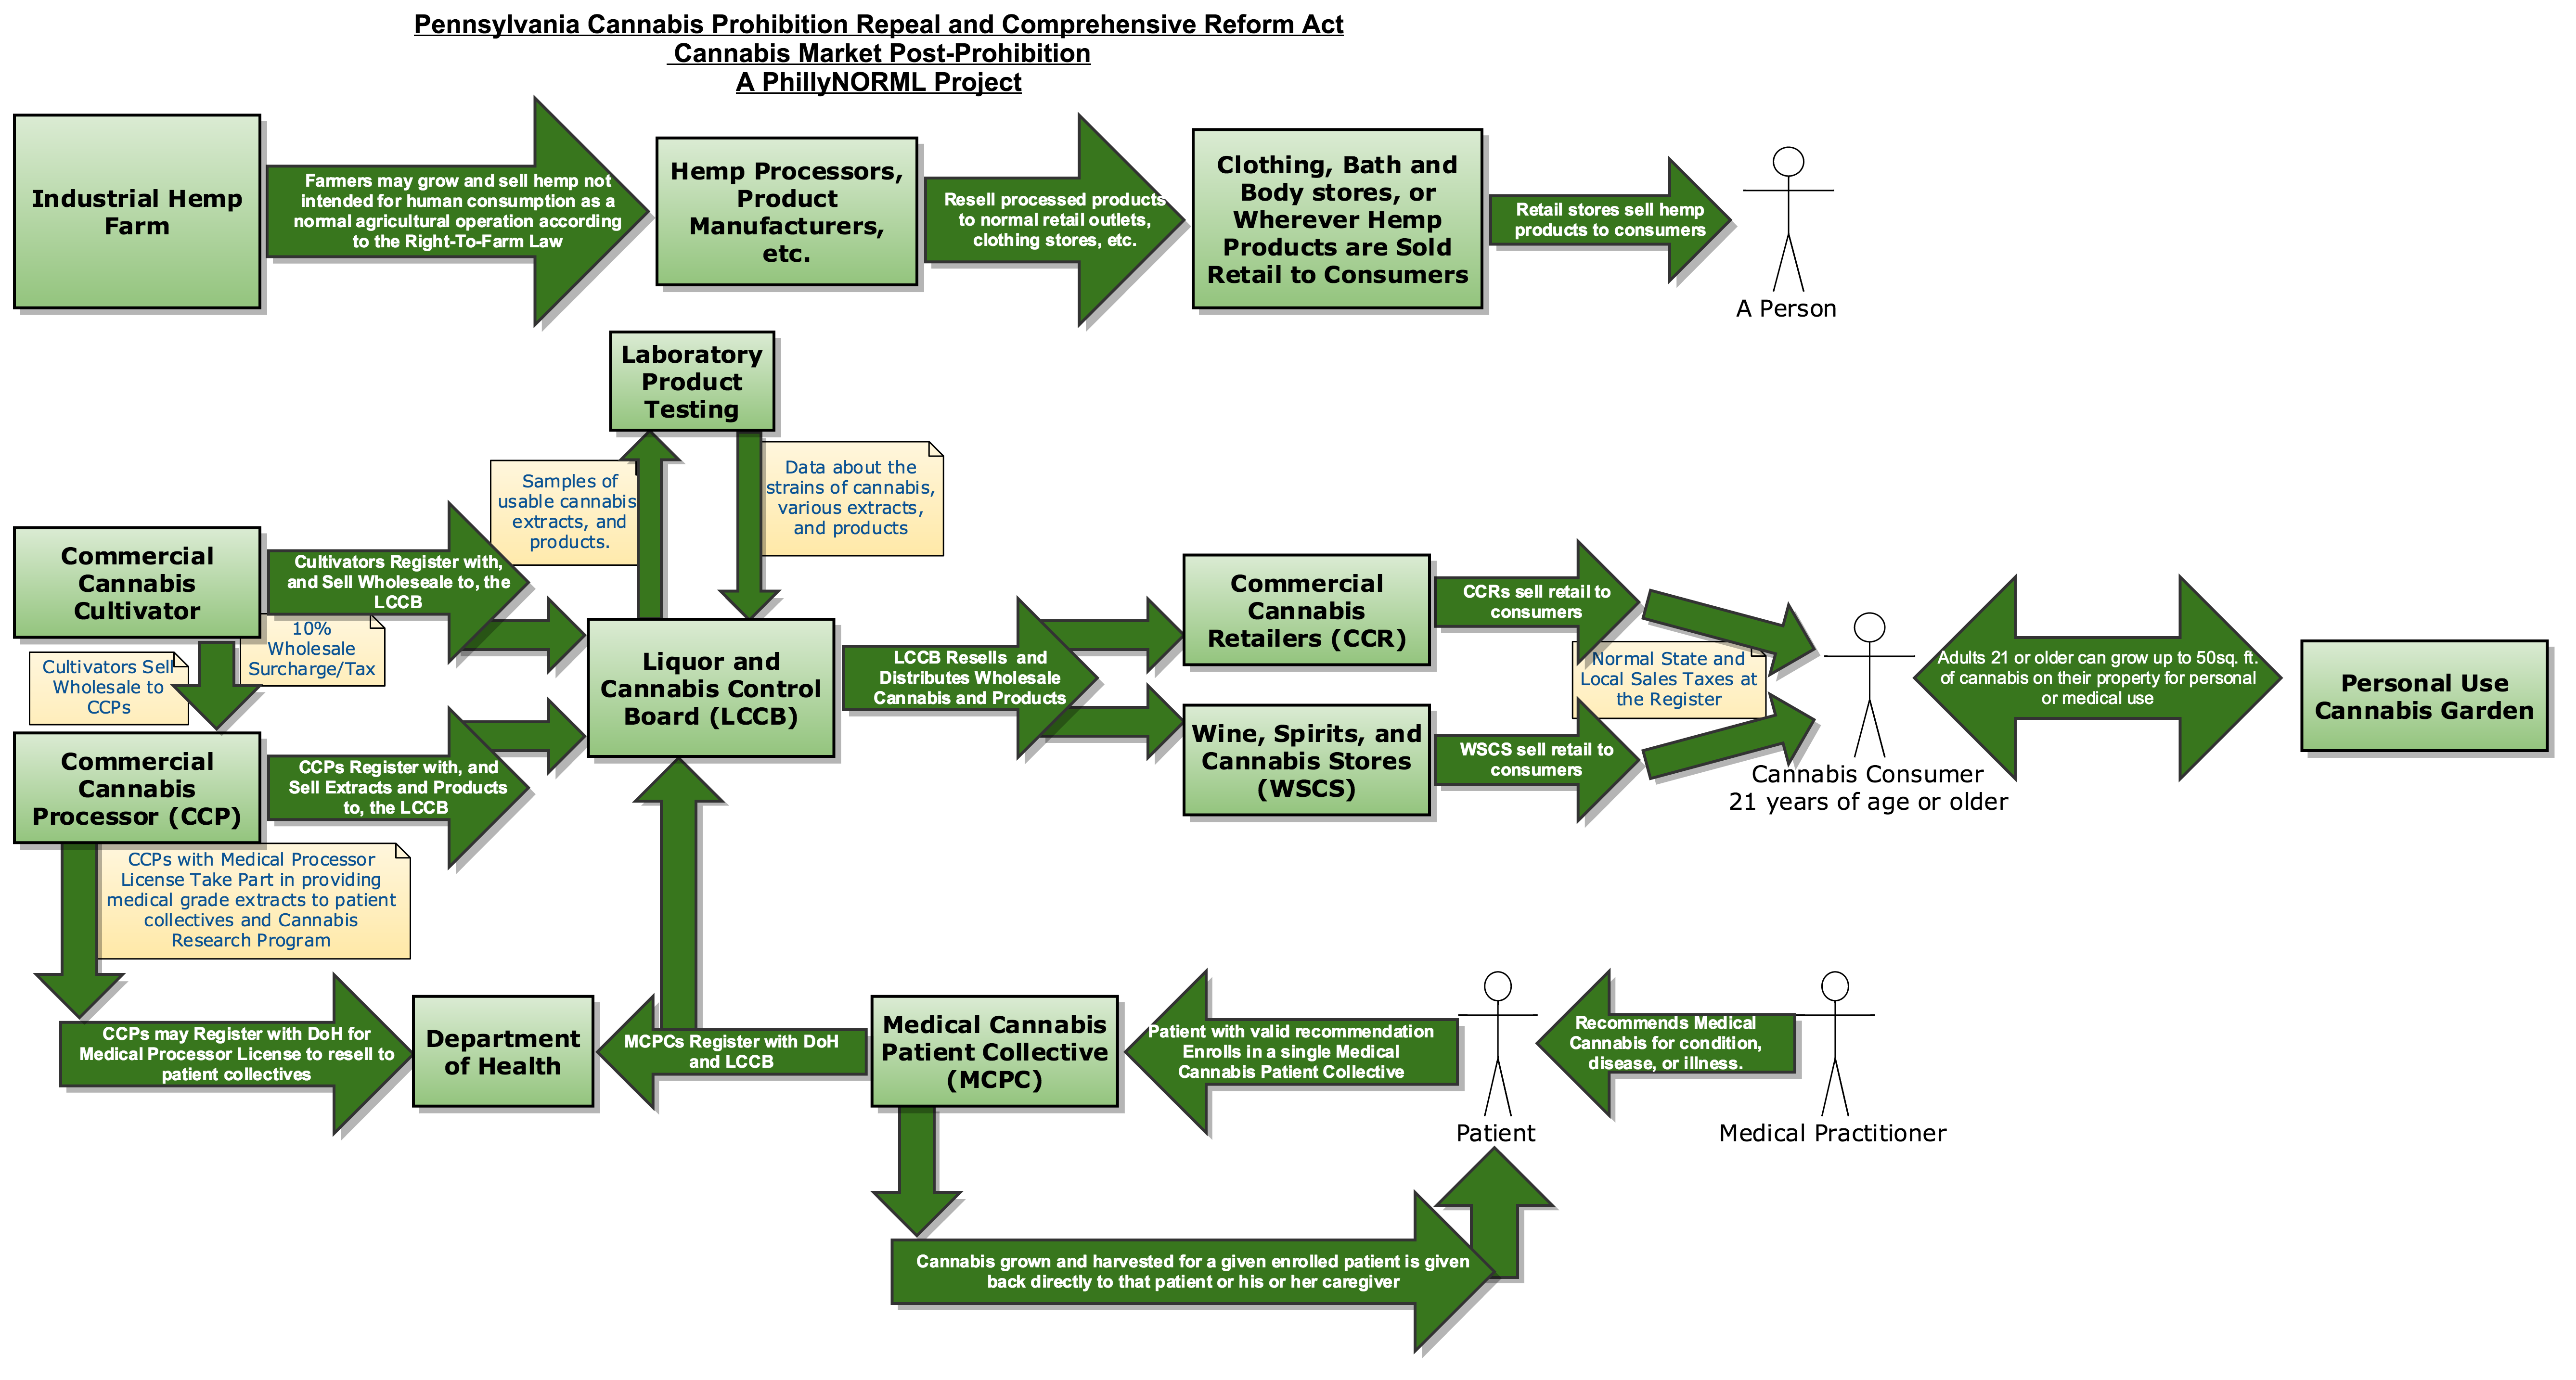 Cannabis Prohibition Repeal and Comprehensive Reform Act - Flow Diagram